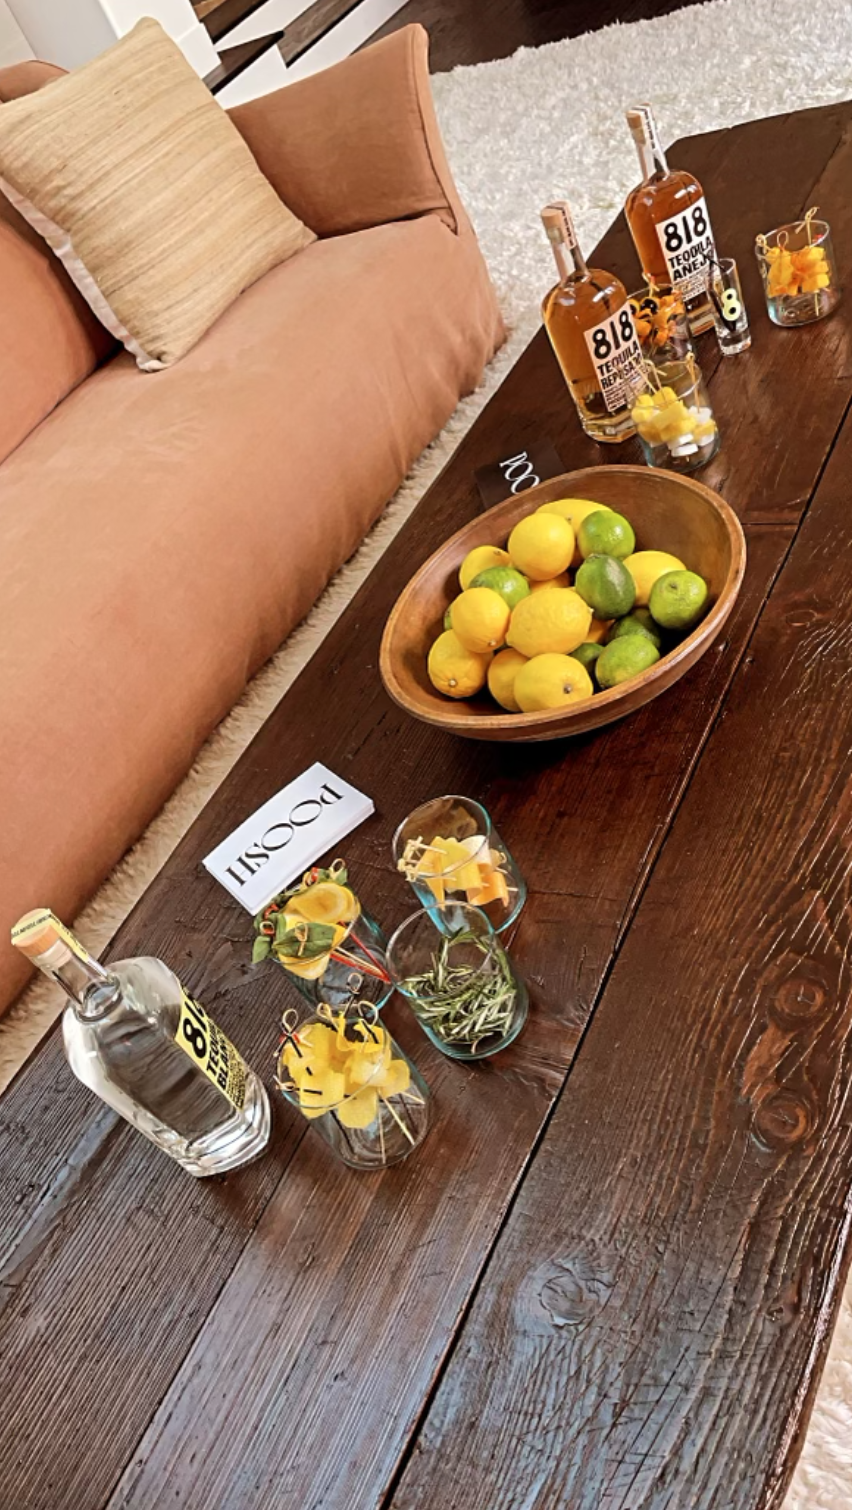 kendall jenner 818 Tequila Twist Bar at Home